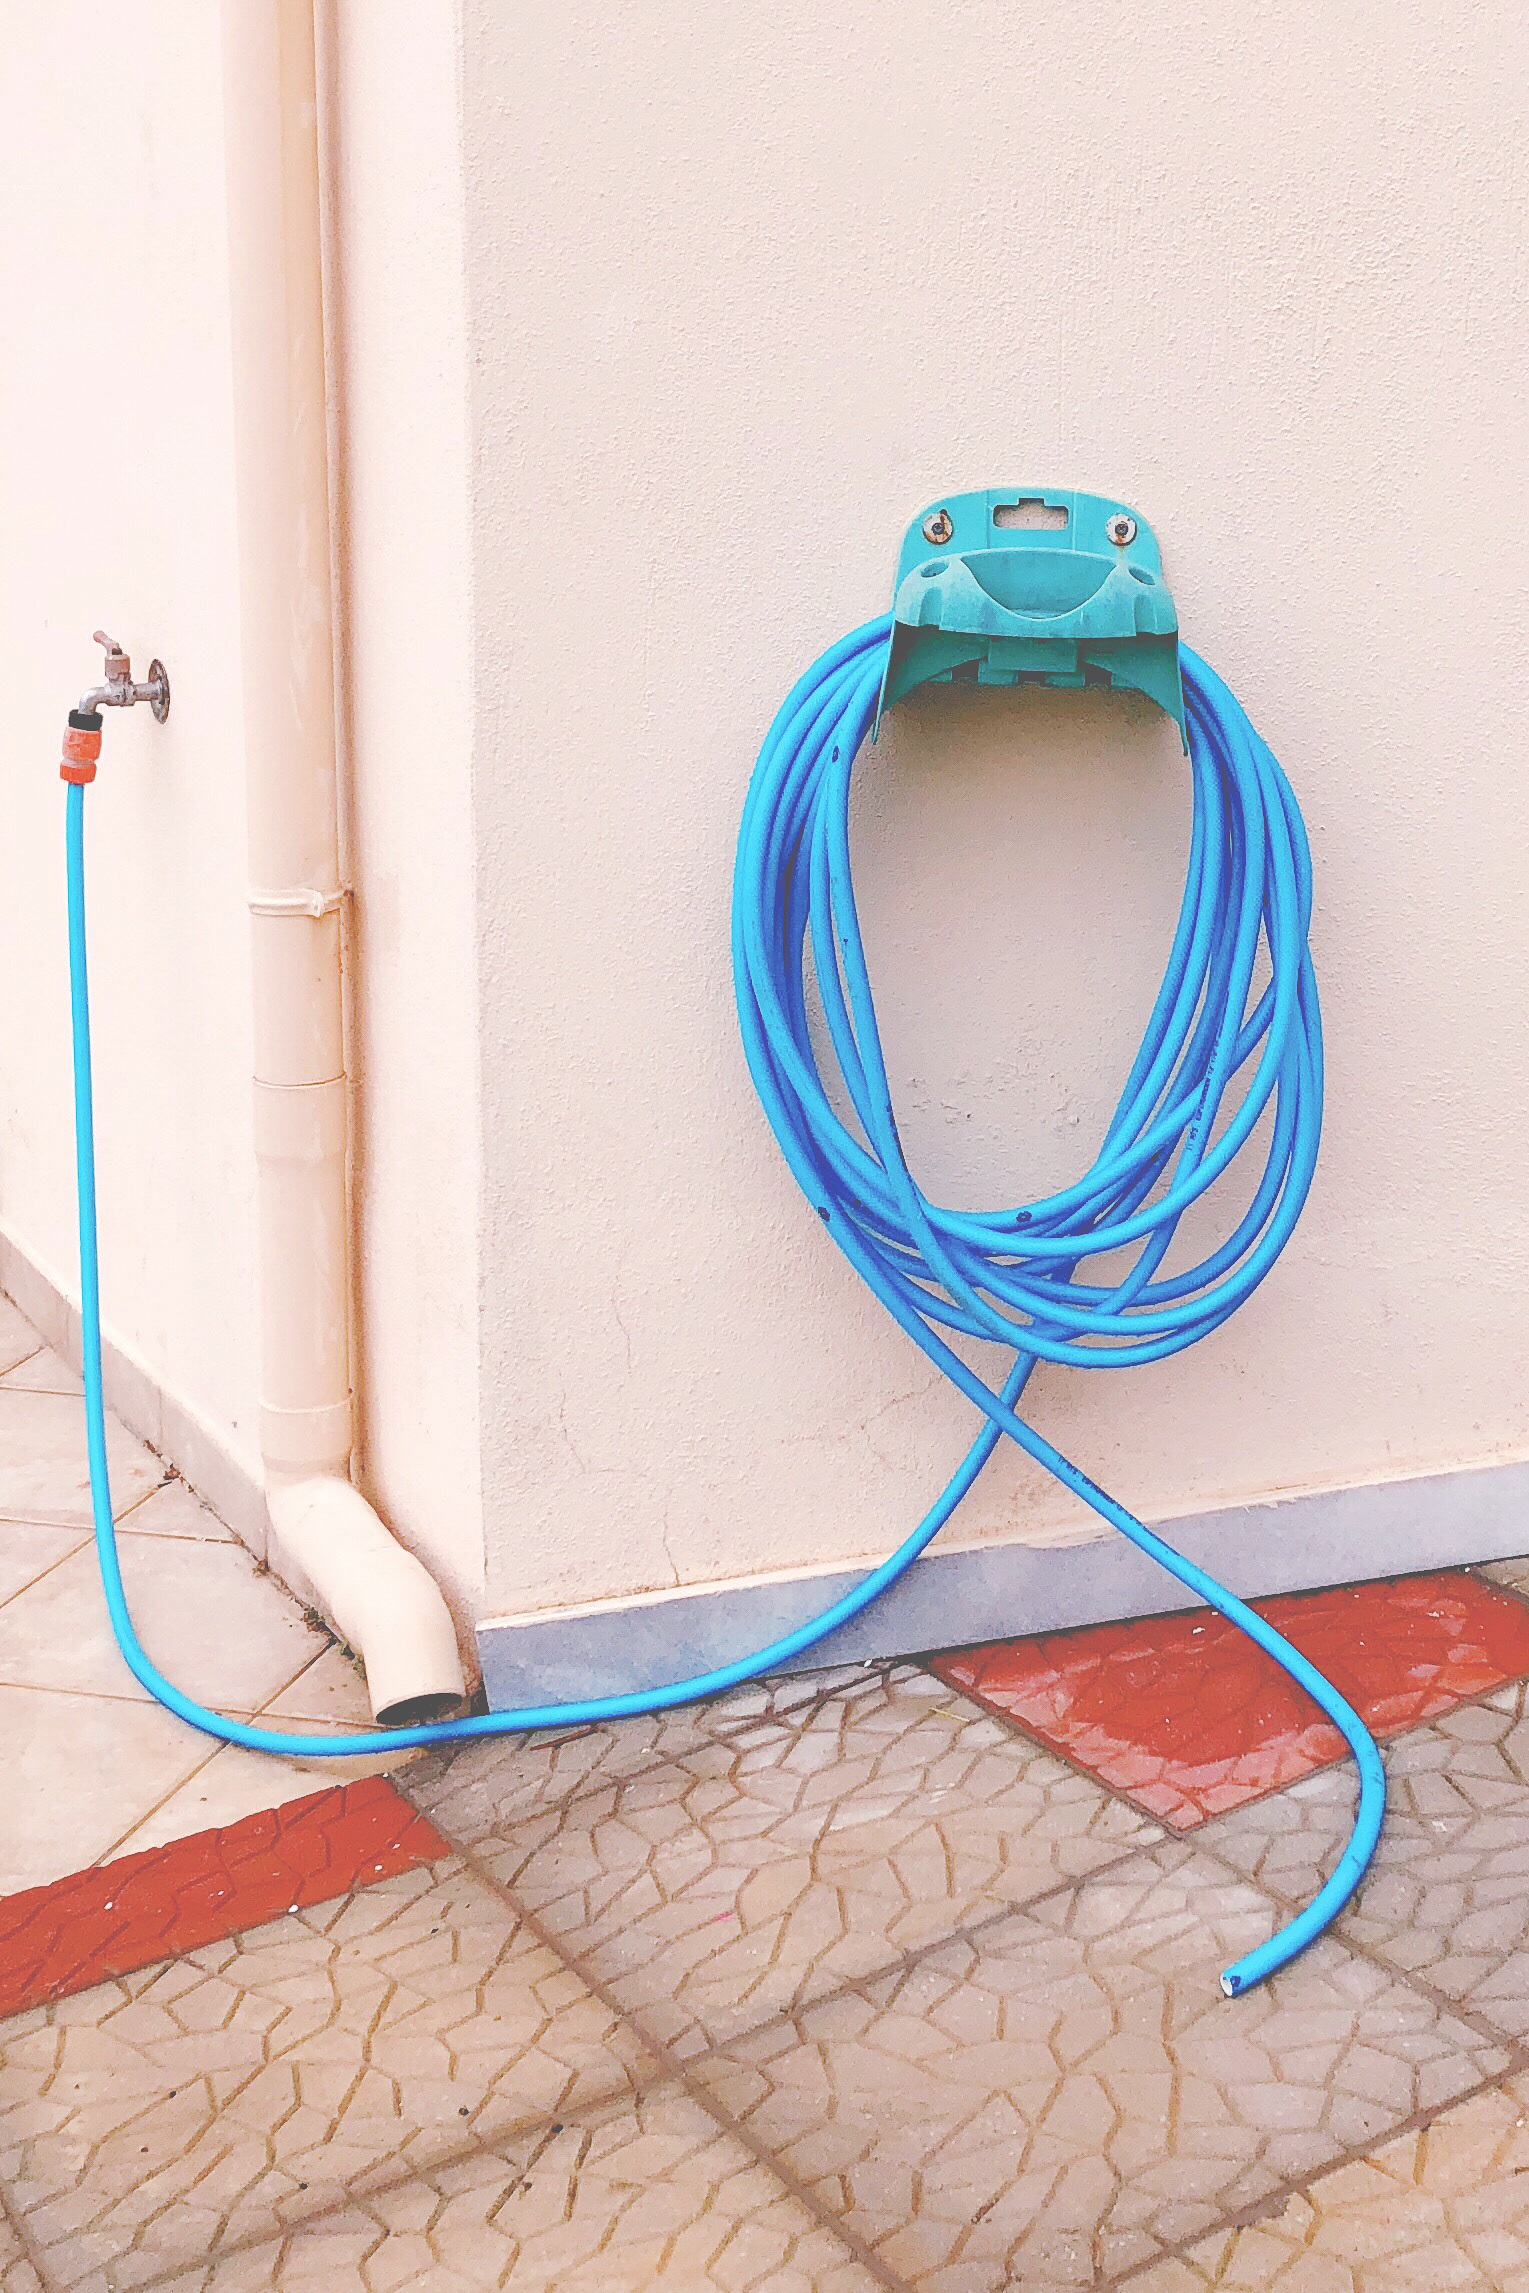 What is the appeal? - After all, it is only just a hosepipe!